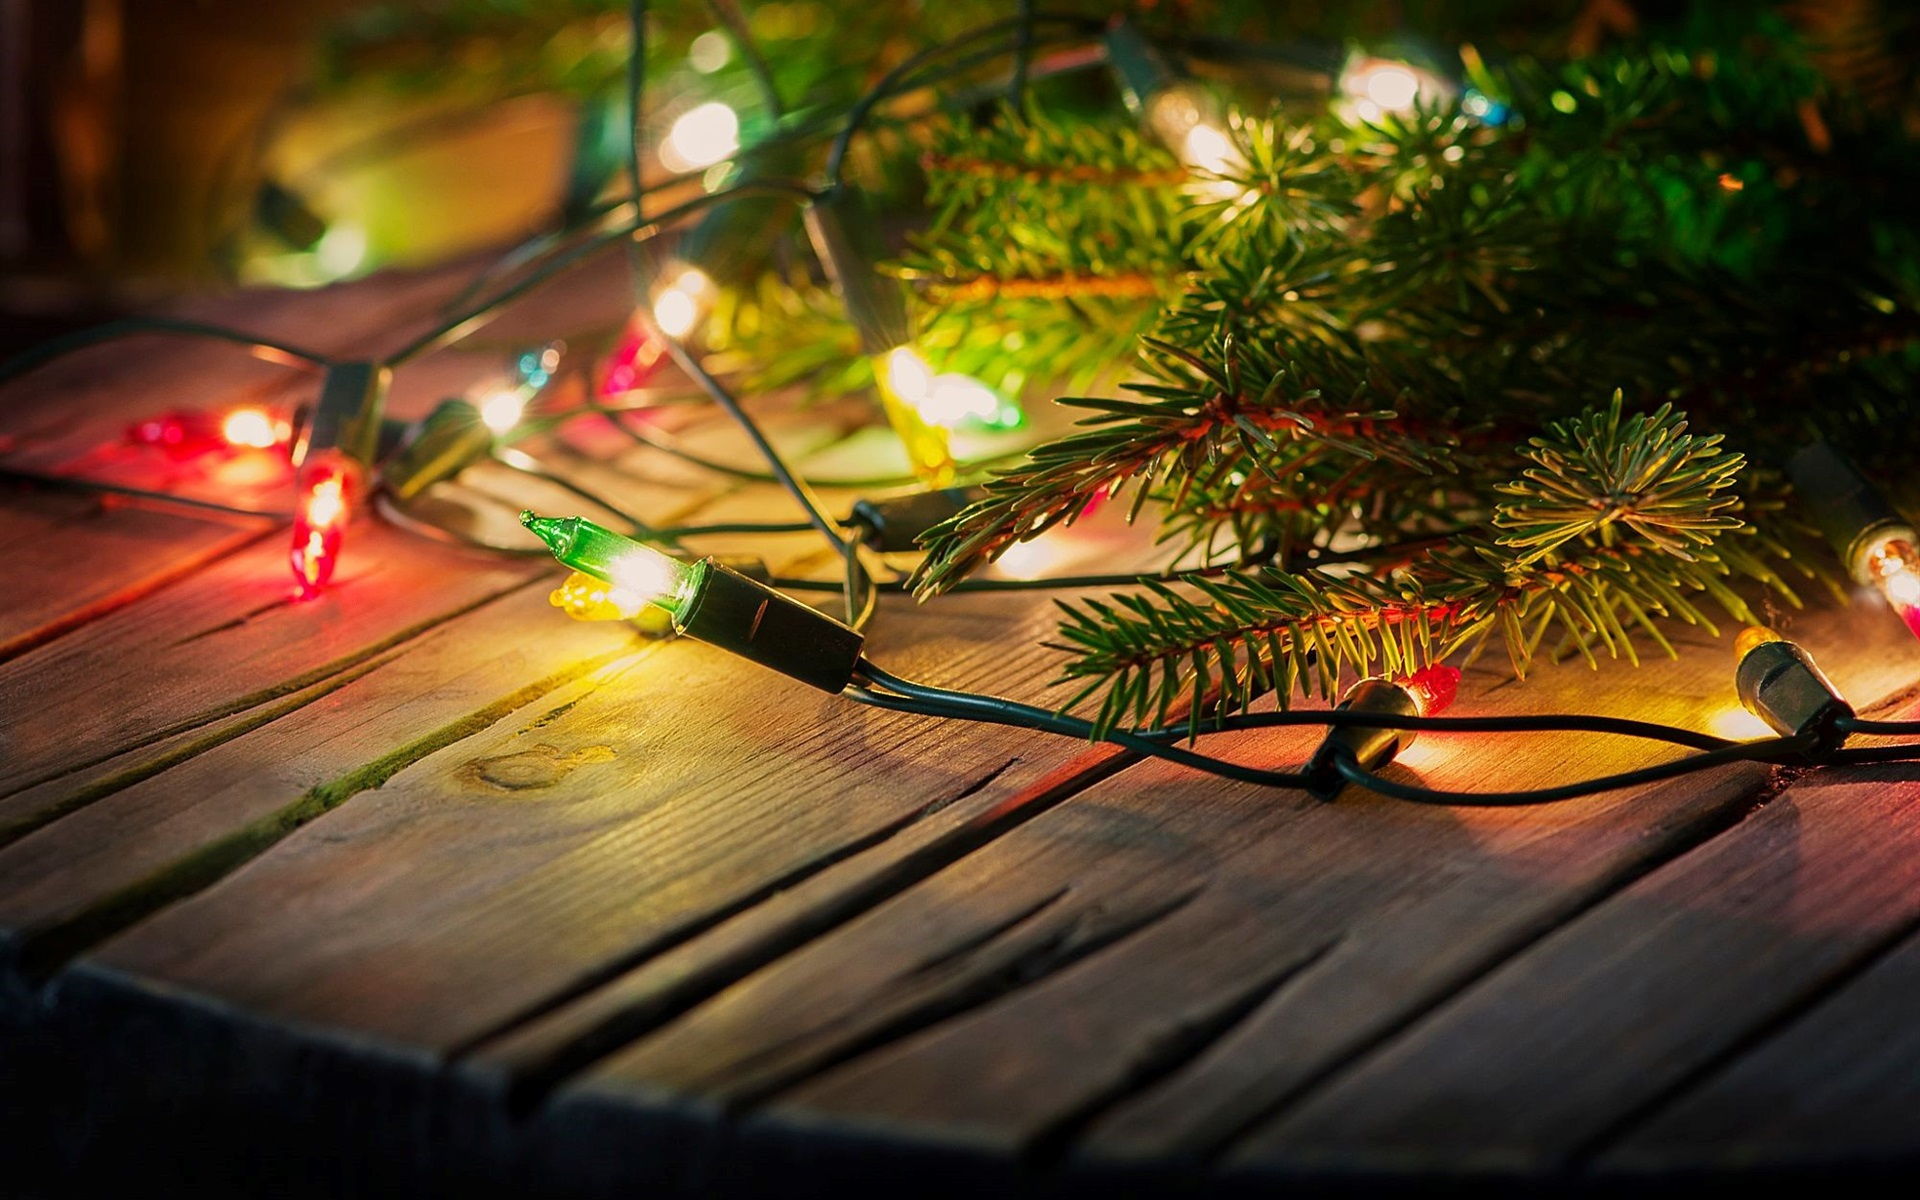 wallpaper holiday lights, decoration 1920x1200 hd picture, image